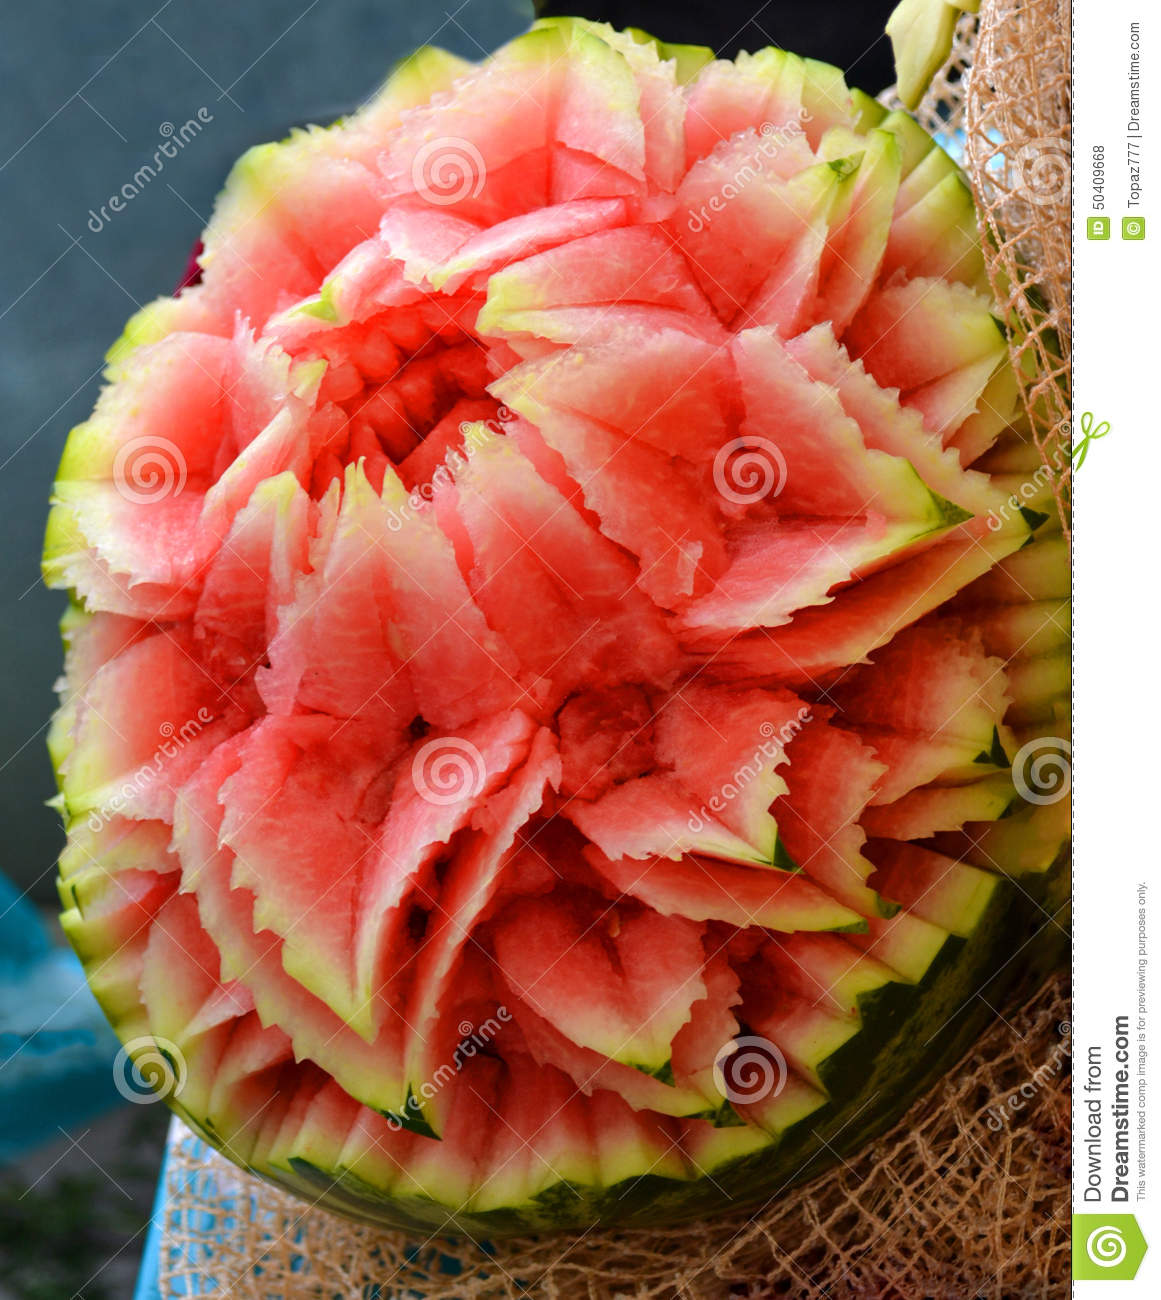 Watermelon carving stock photo image of creative close